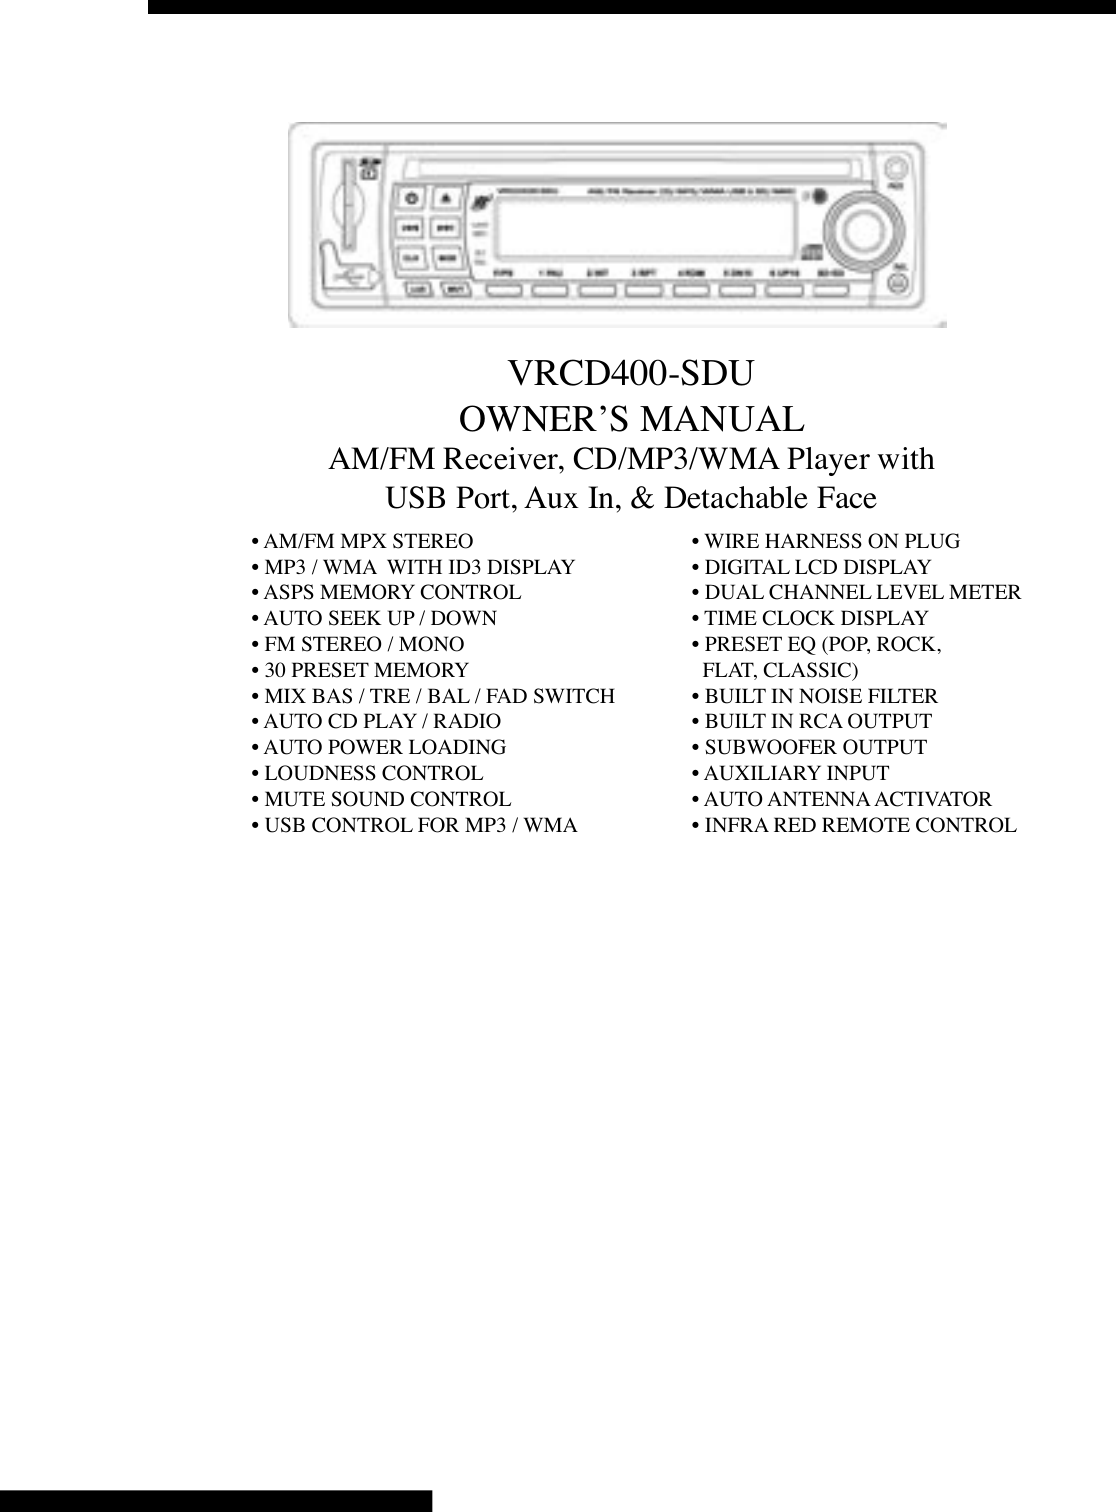 Vrcd500 Sdu Free Wiring Diagram Page 2 And Schematics Vr3 Car Stereo Harness Vrcd400 Schematic Diagrams Wire